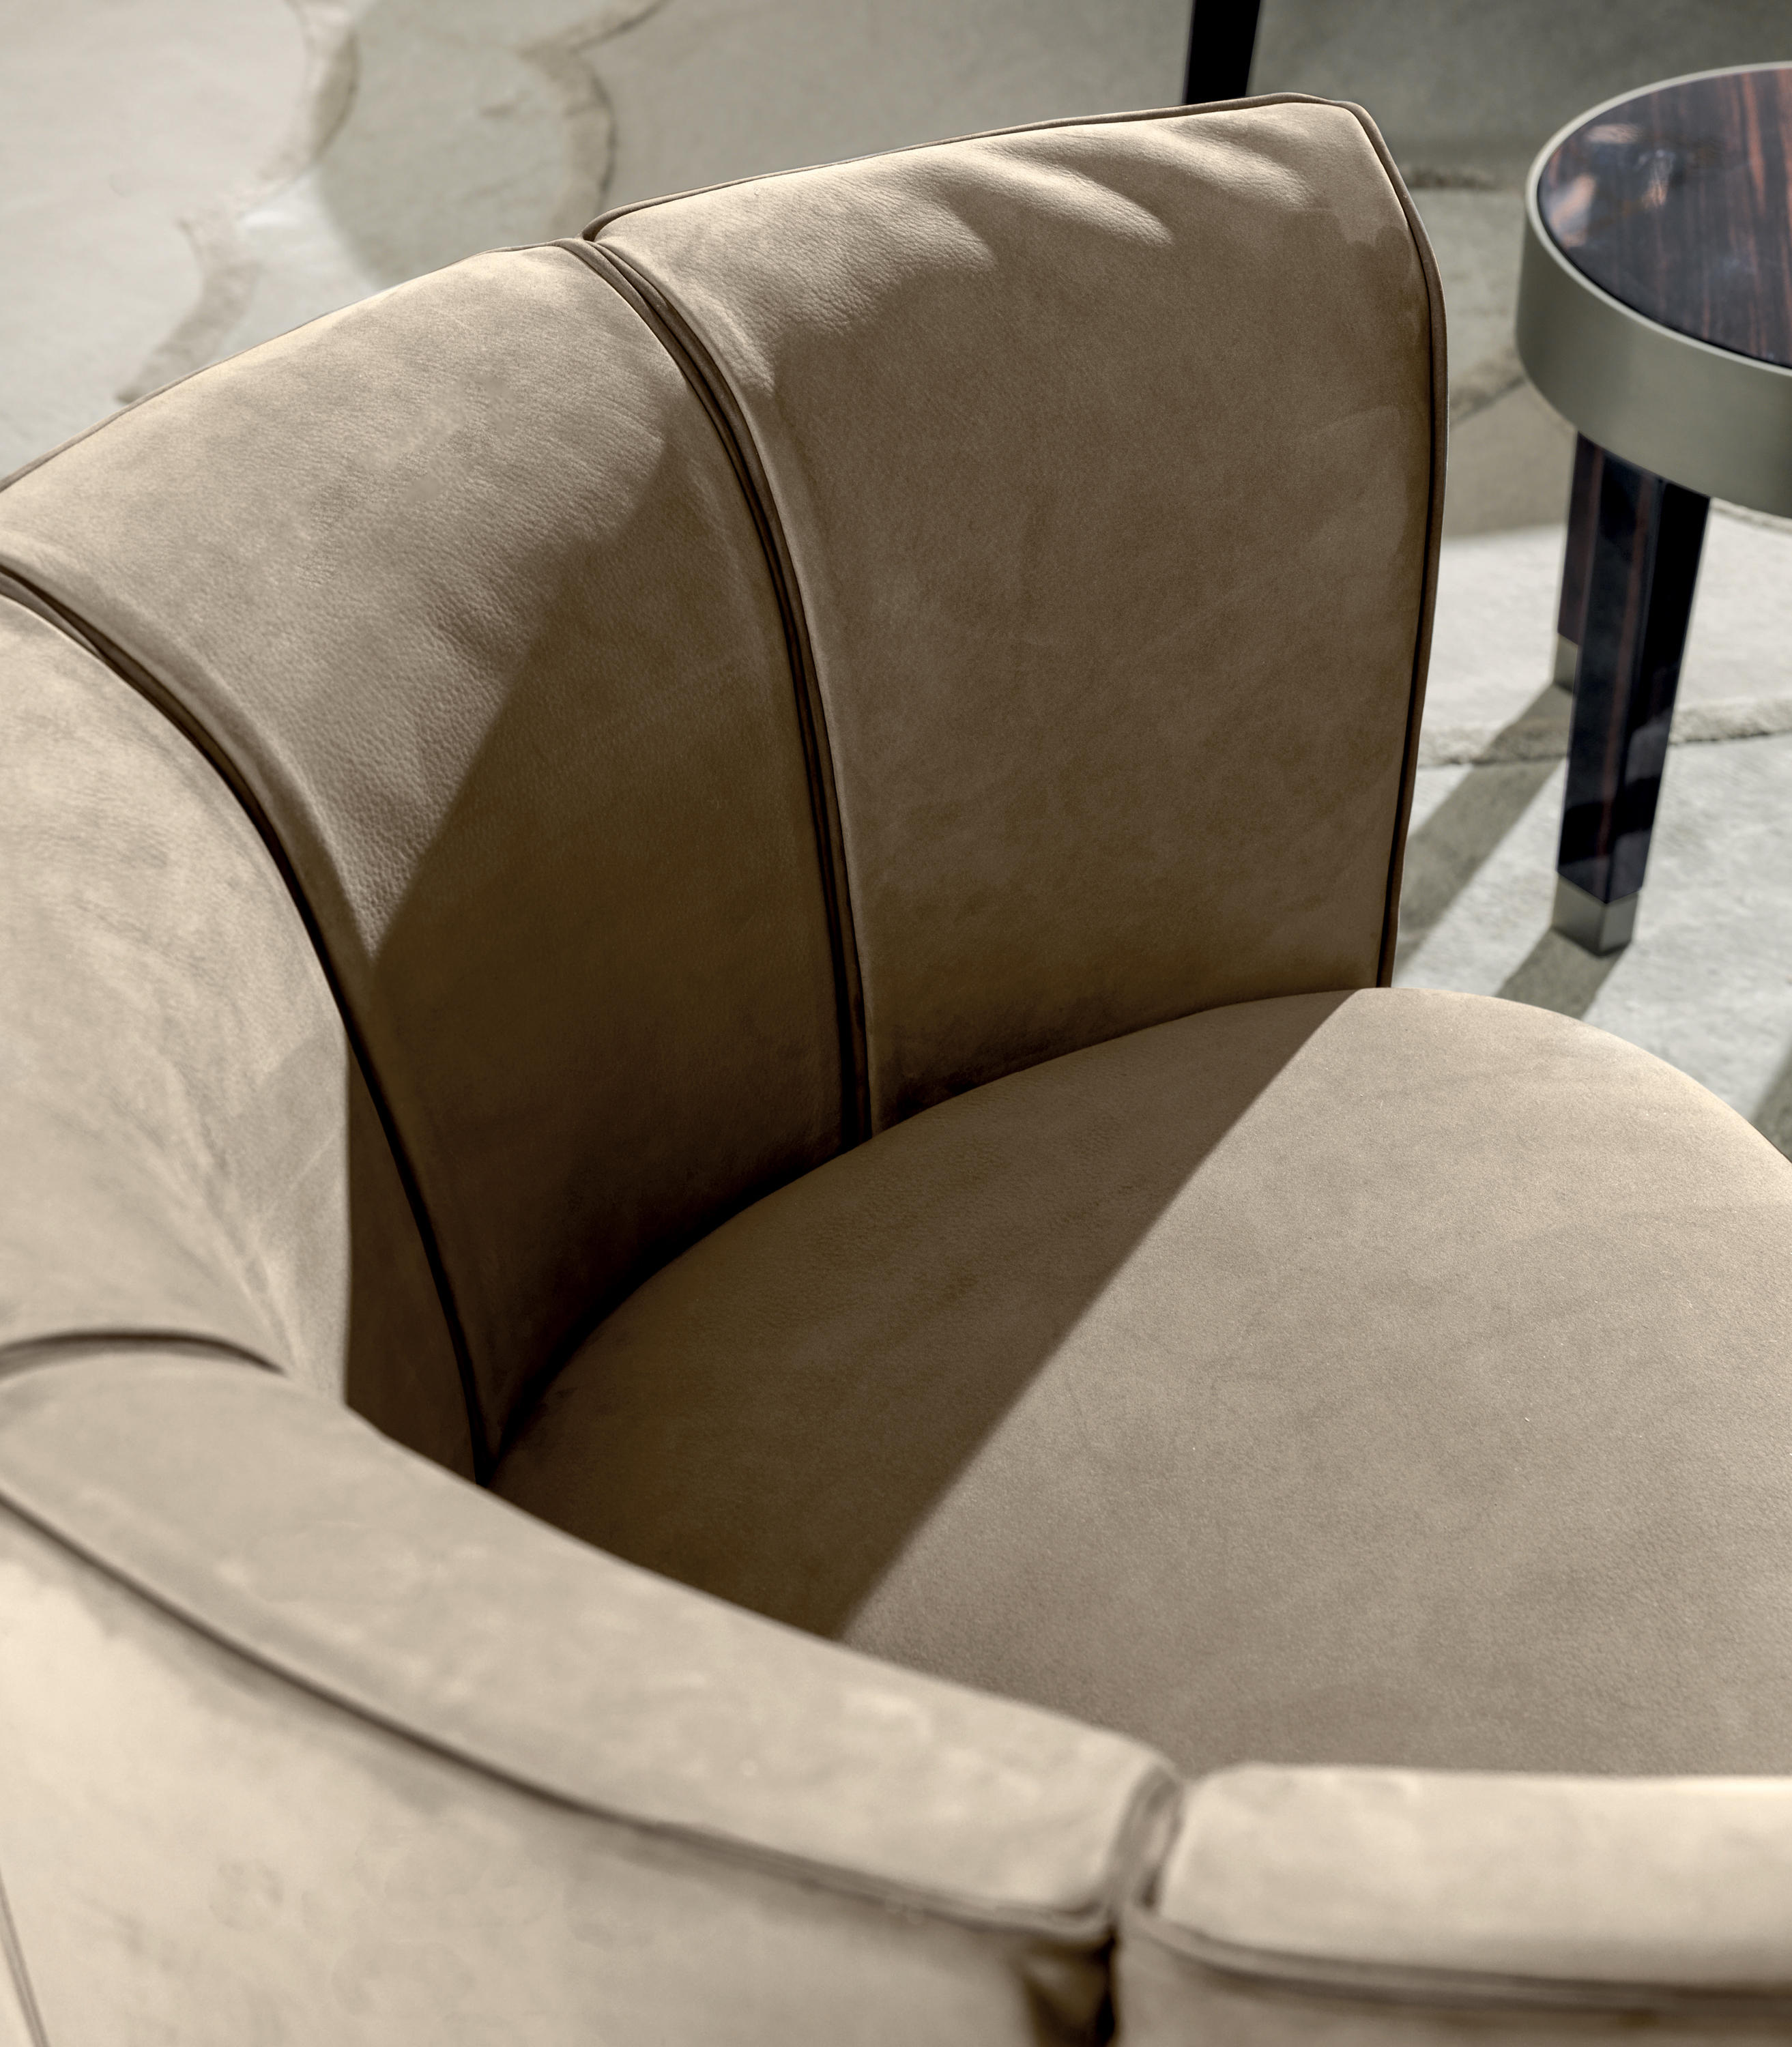 Spa lounge chair -  Ludwig By Longhi S P A Lounge Chairs